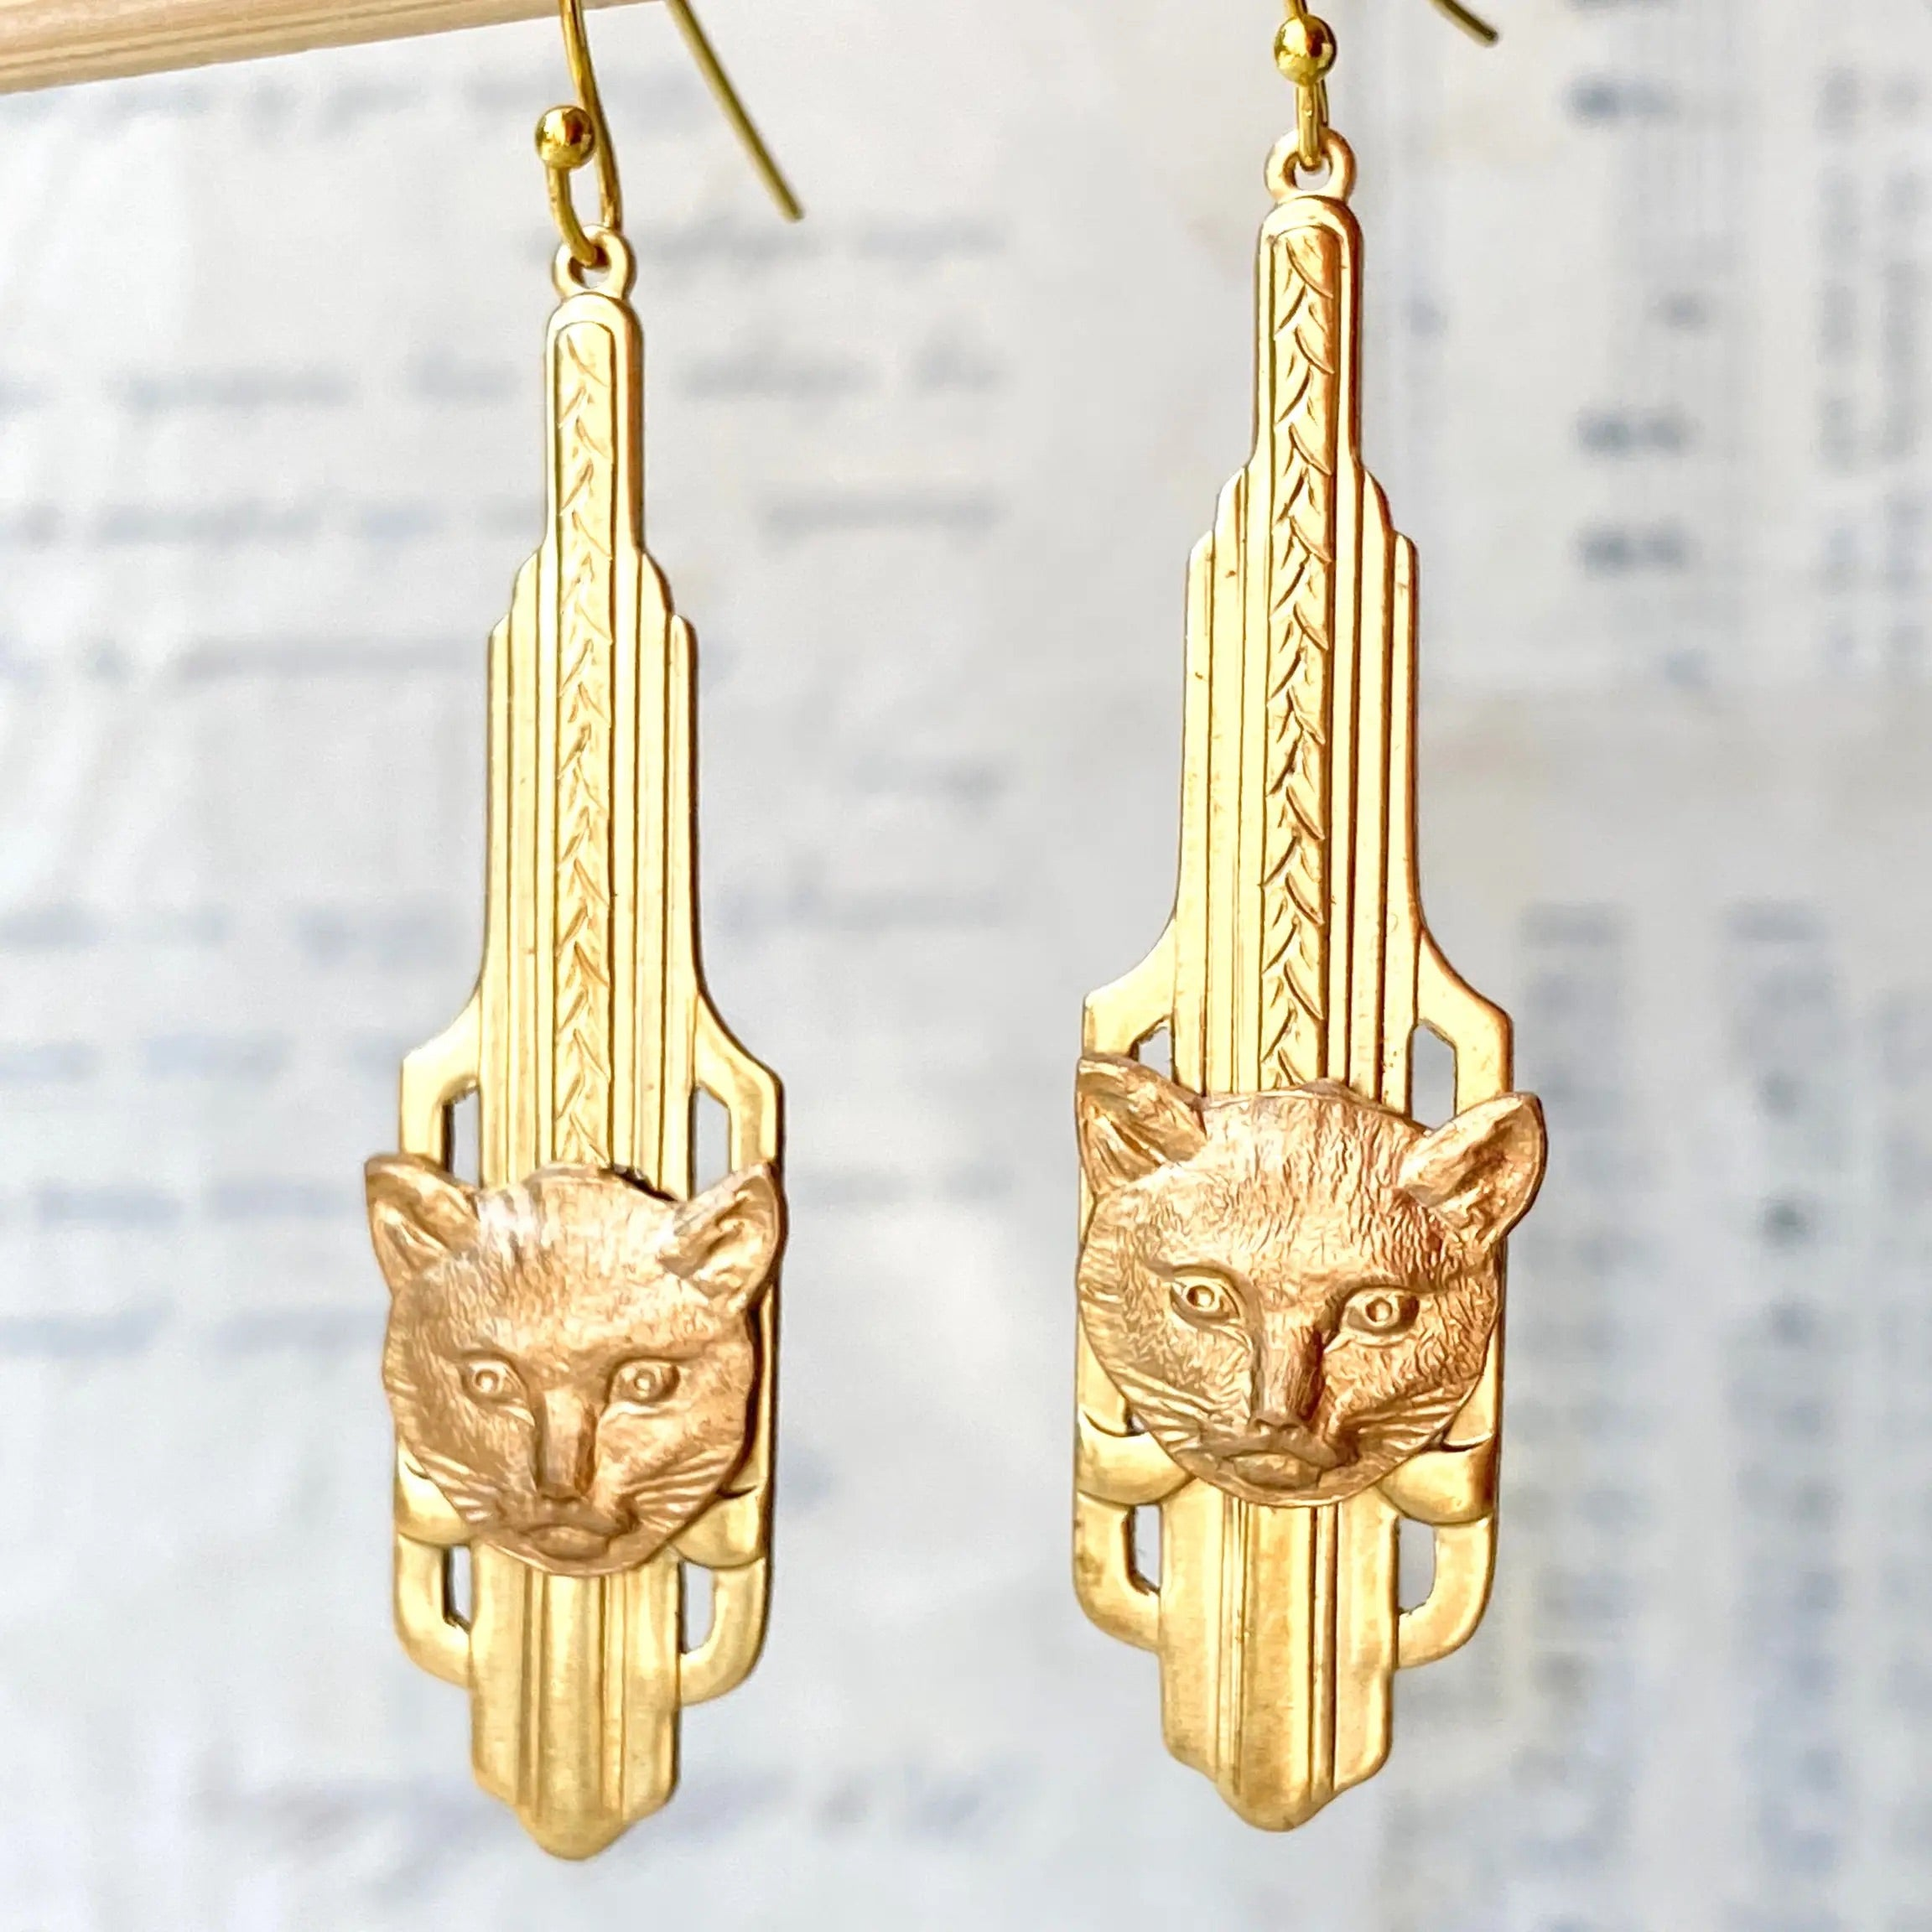 Art Deco Cat Earrings